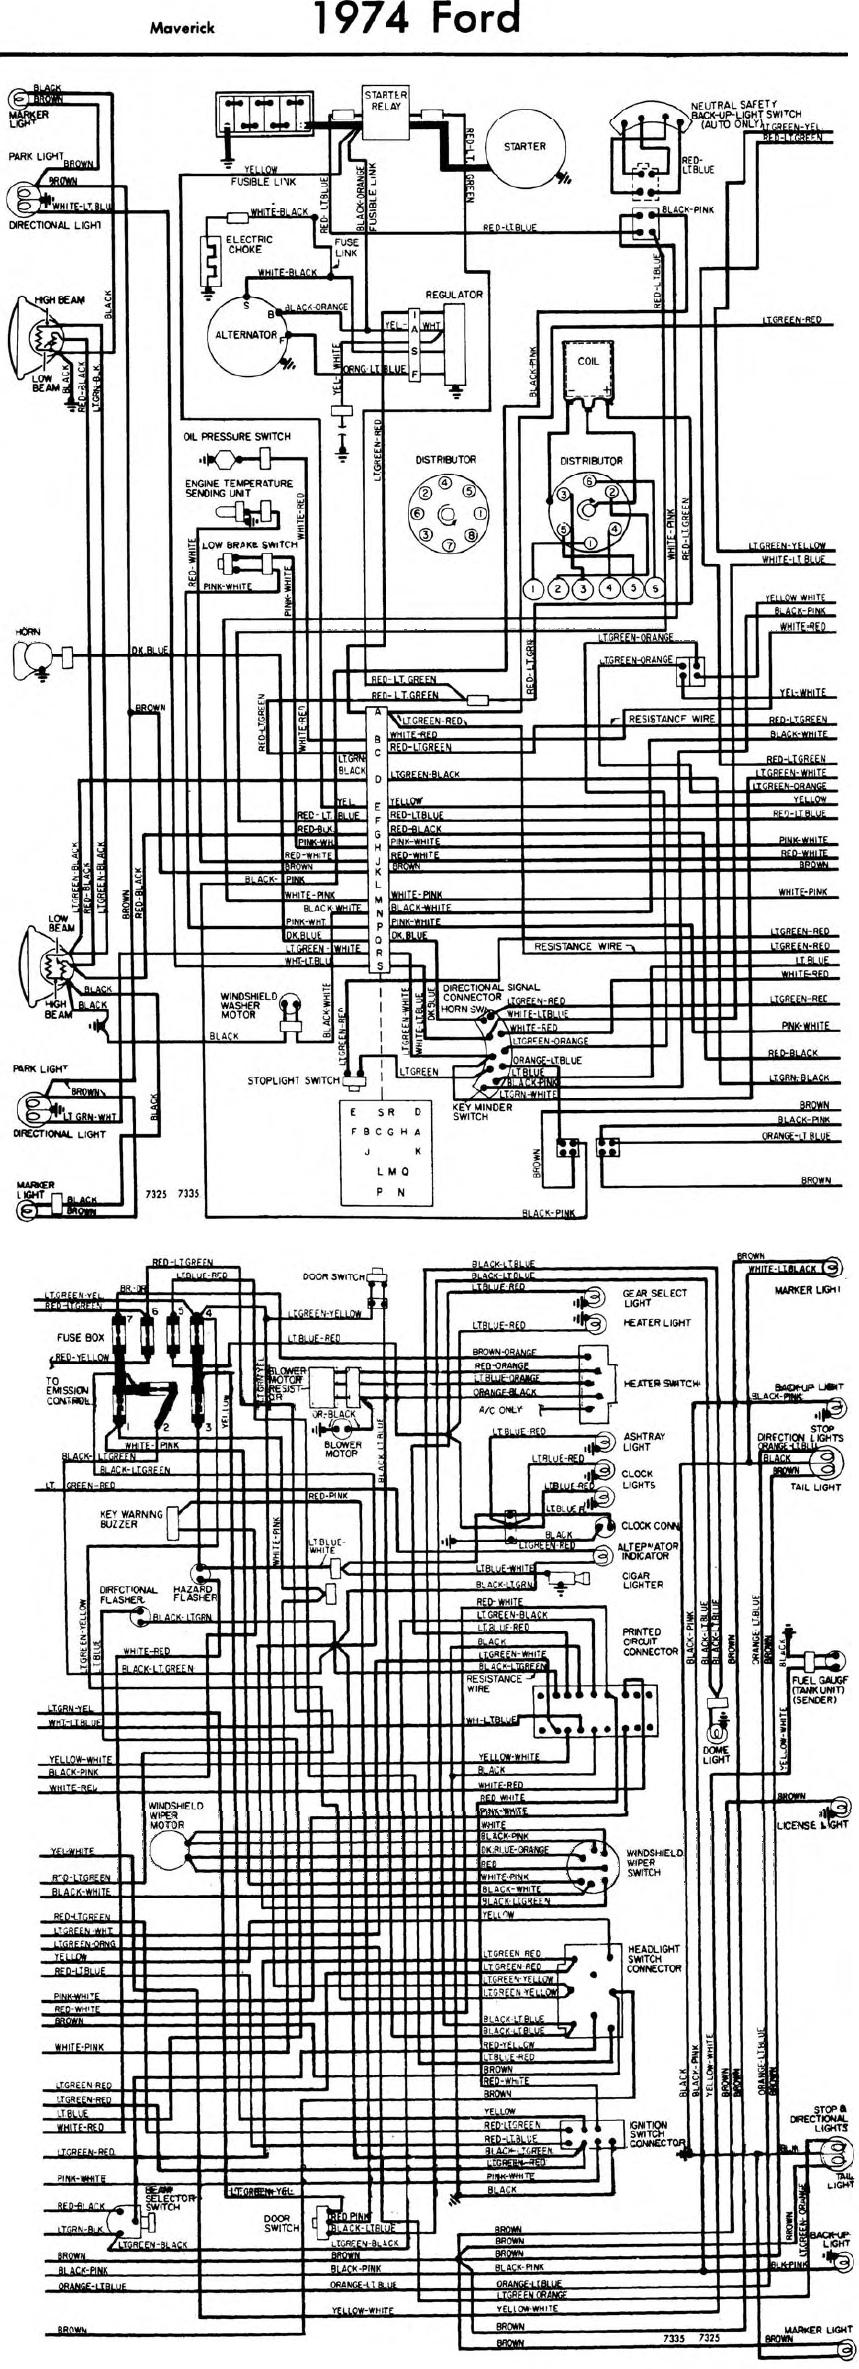 1975 Ford Maverick Wiring Guide And Troubleshooting Of Diagram Diagrams Img Rh 33 Andreas Bolz De 1972 1976